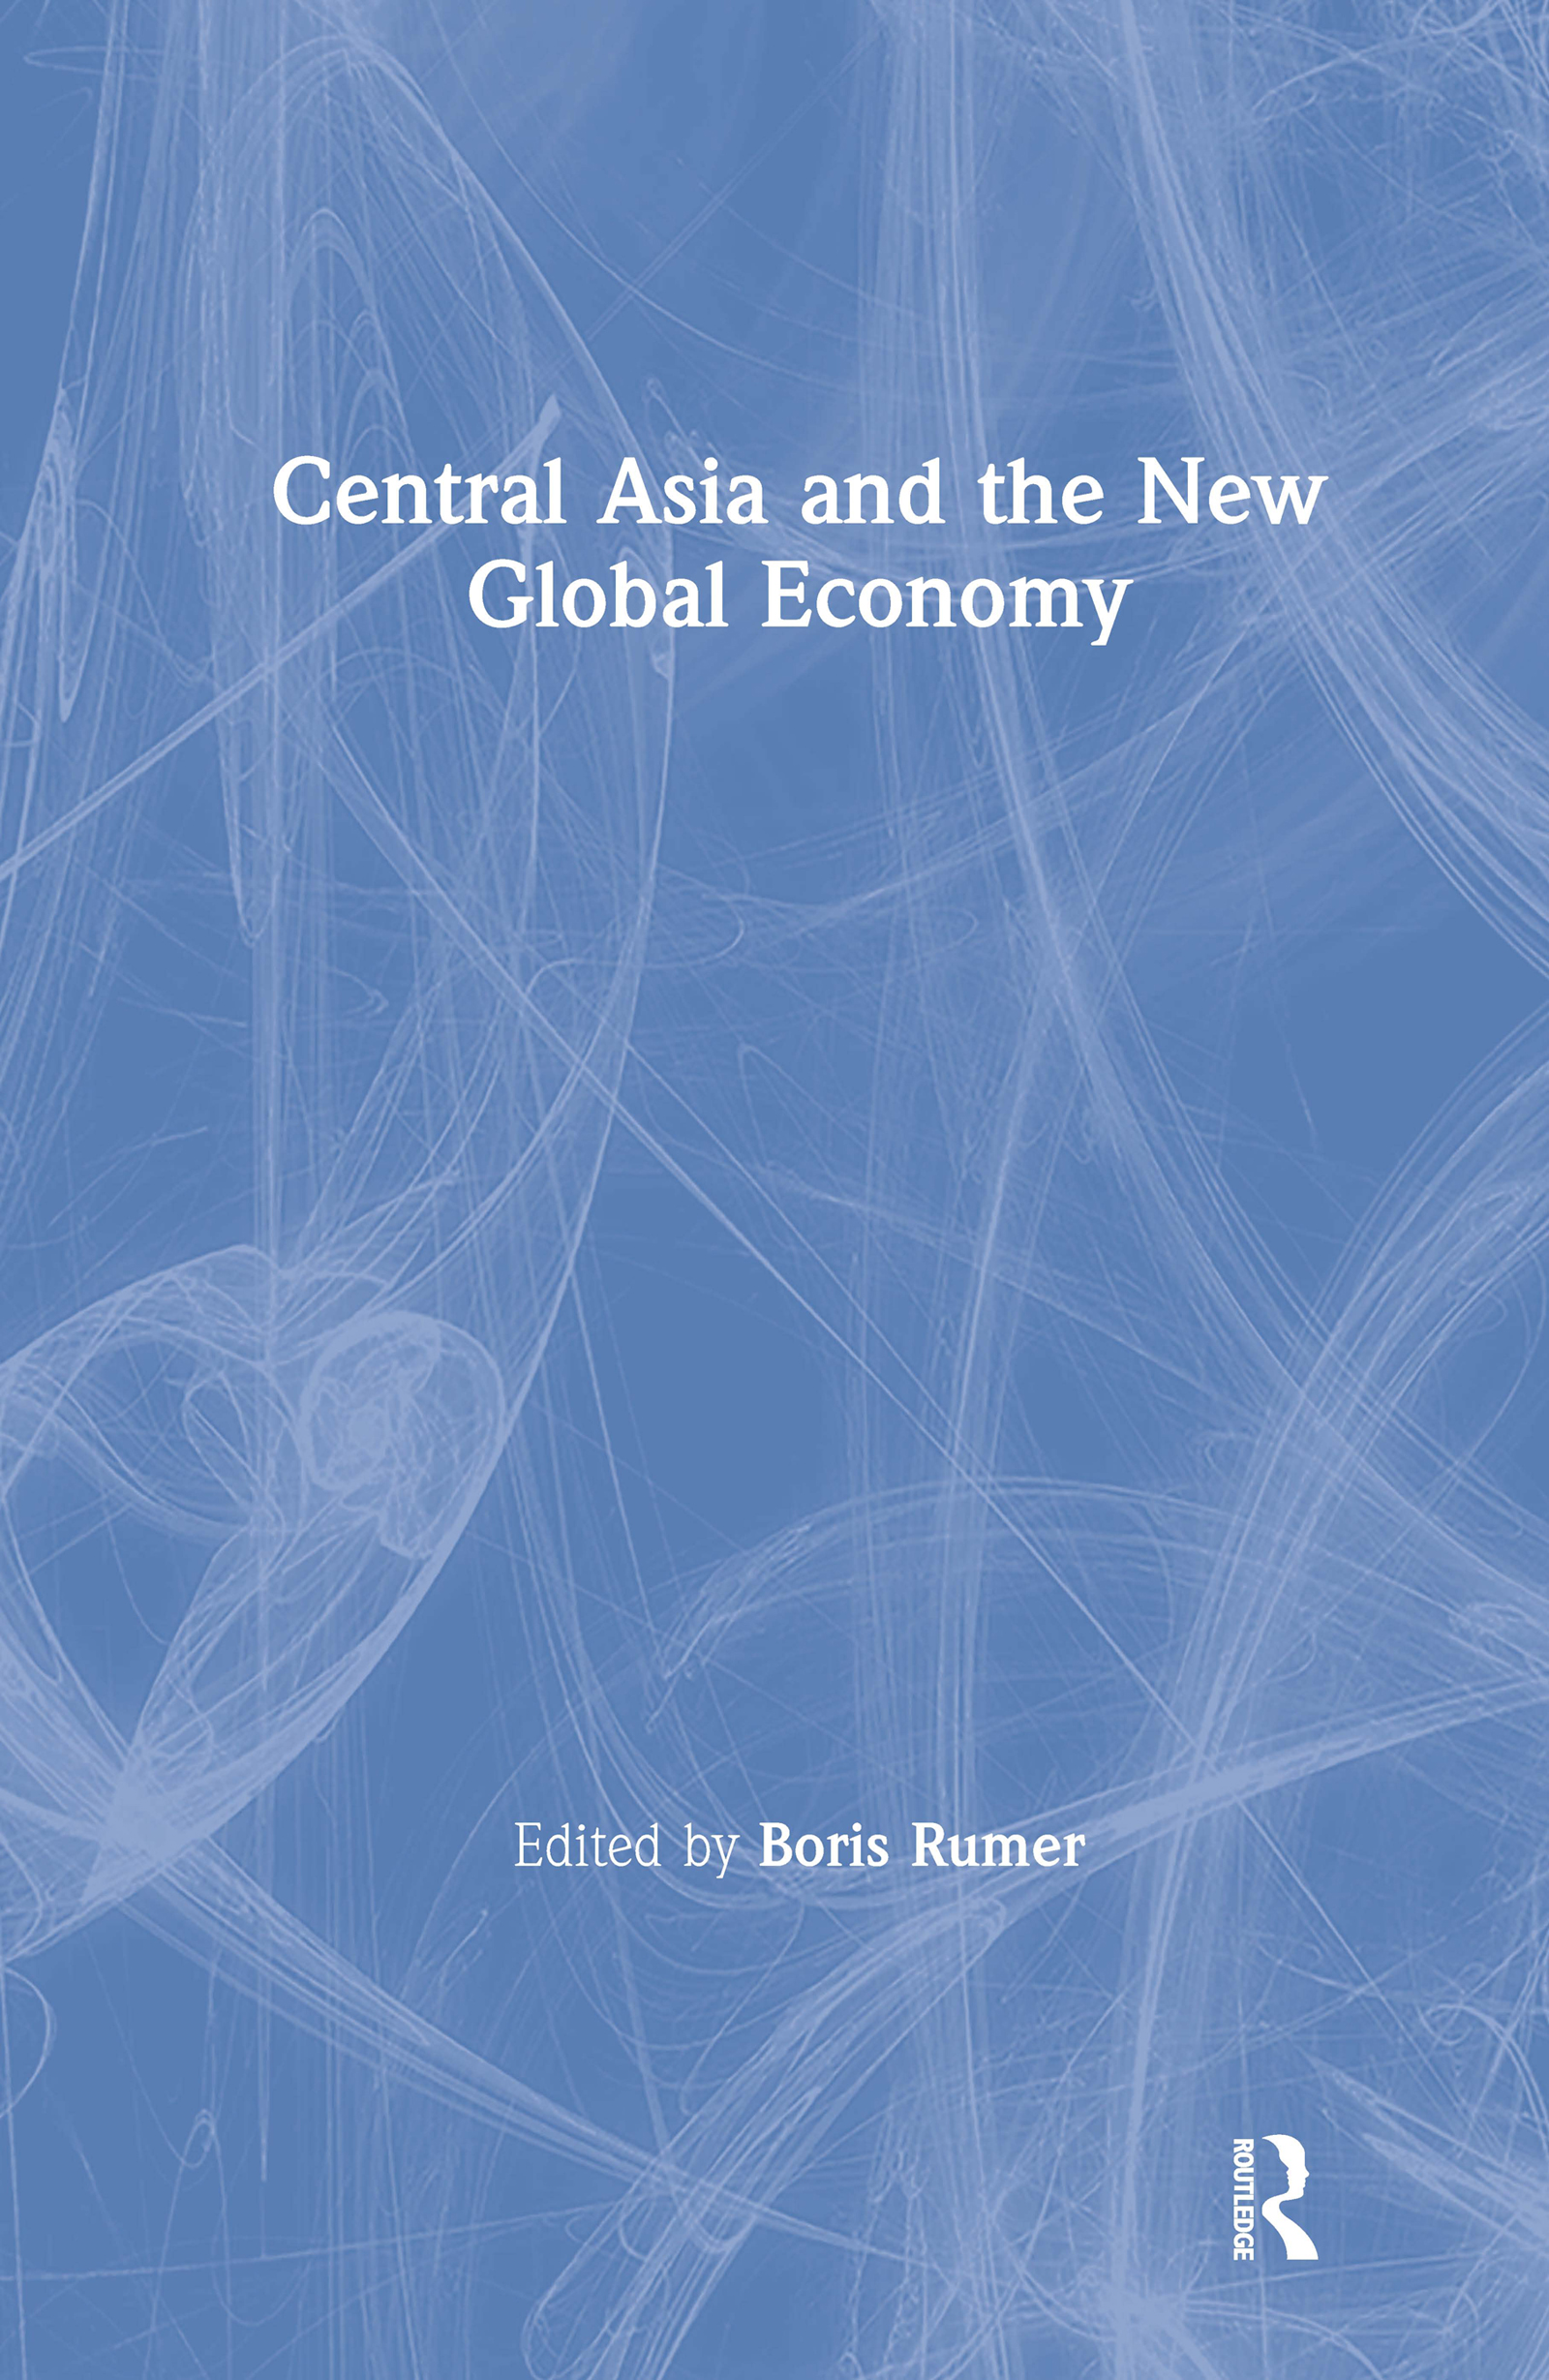 Central Asia and the New Global Economy: Critical Problems, Critical